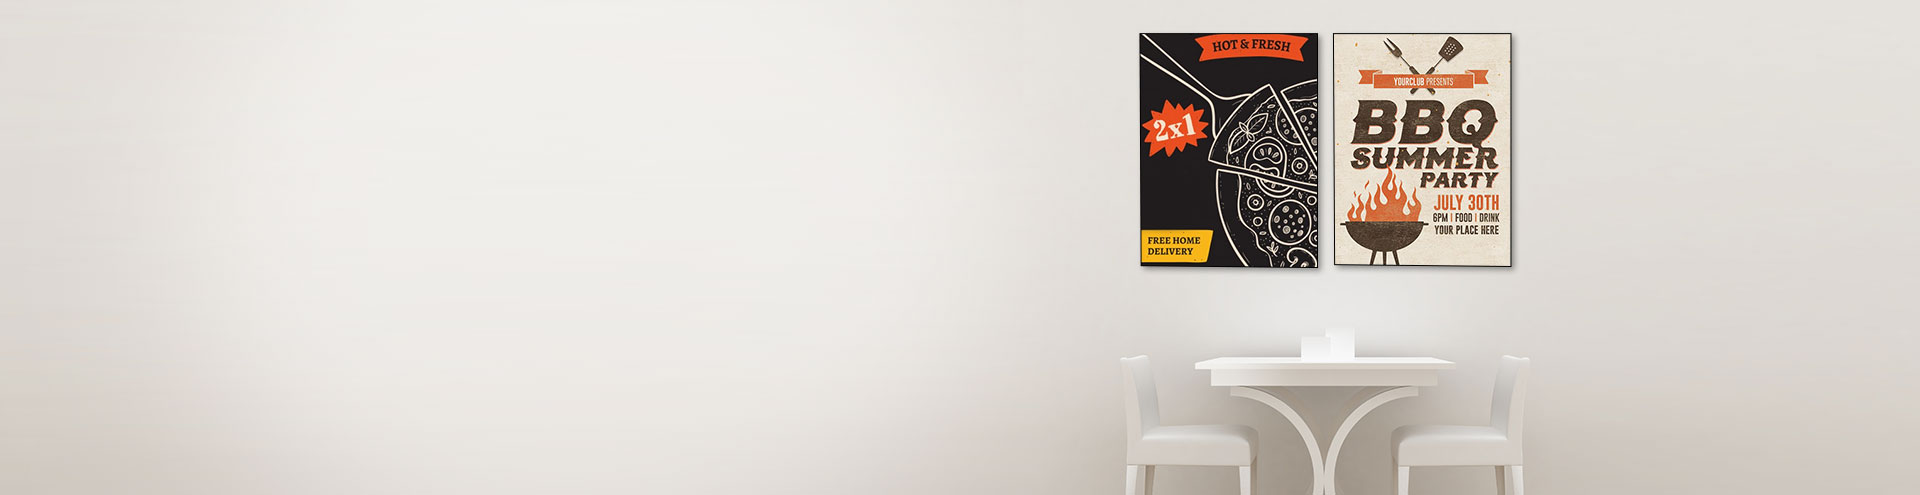 Online Poster Prints -Print in any size you need